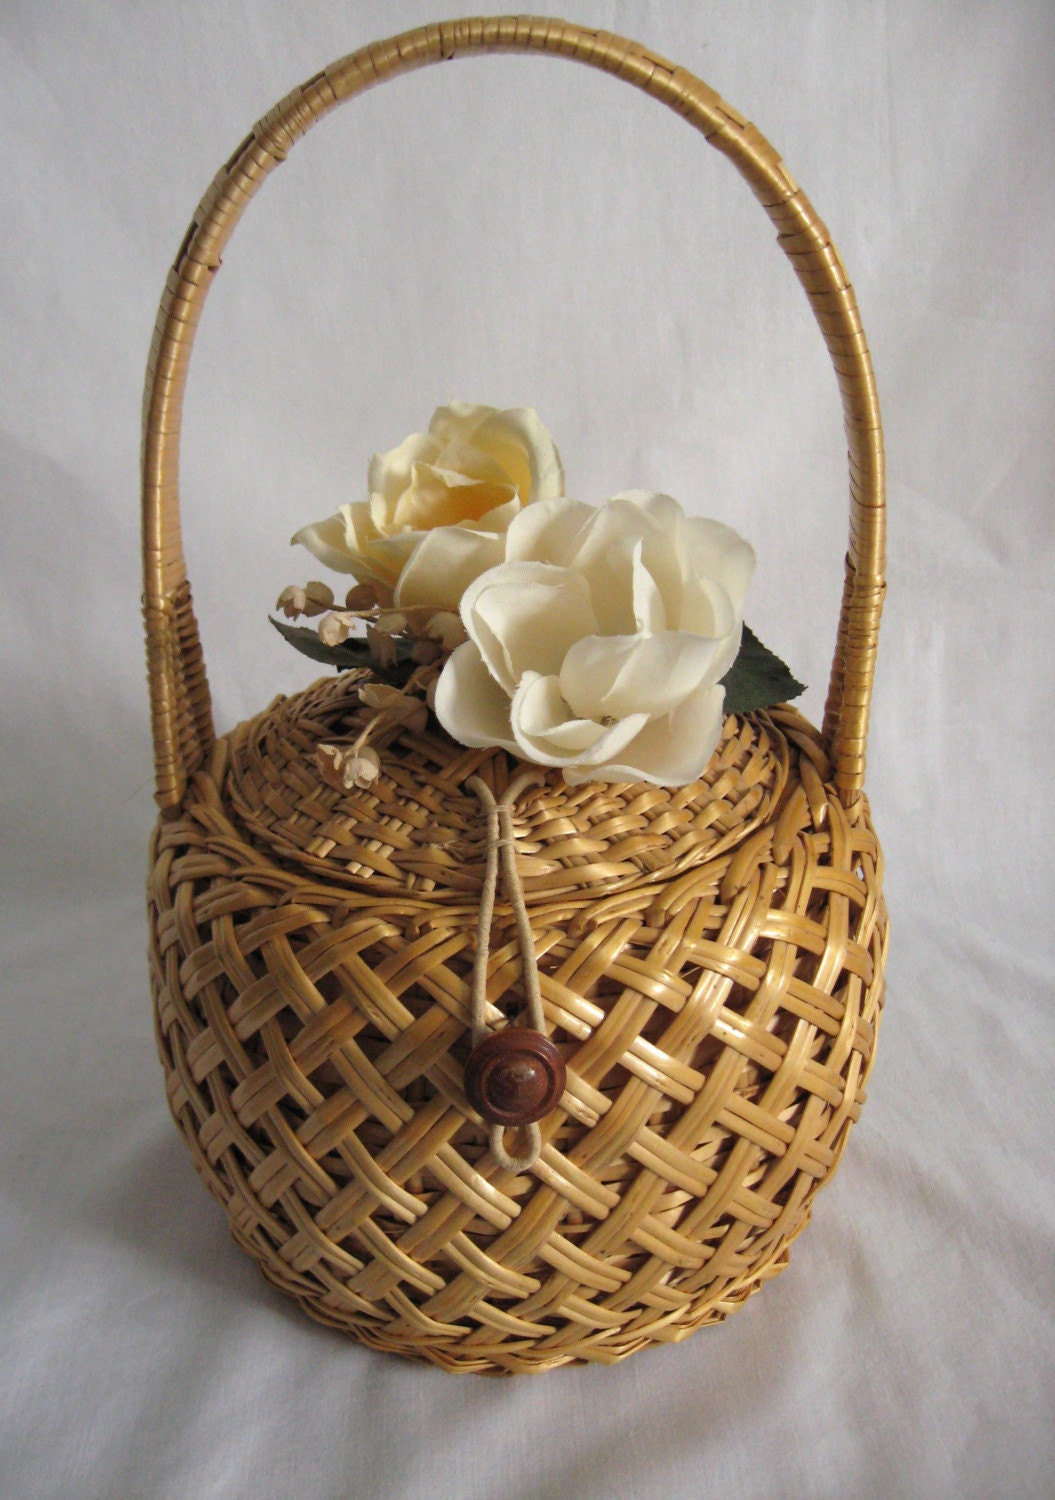 Woven Basket Purse : Vintage purse woven basket with flowers s by riffraffreview